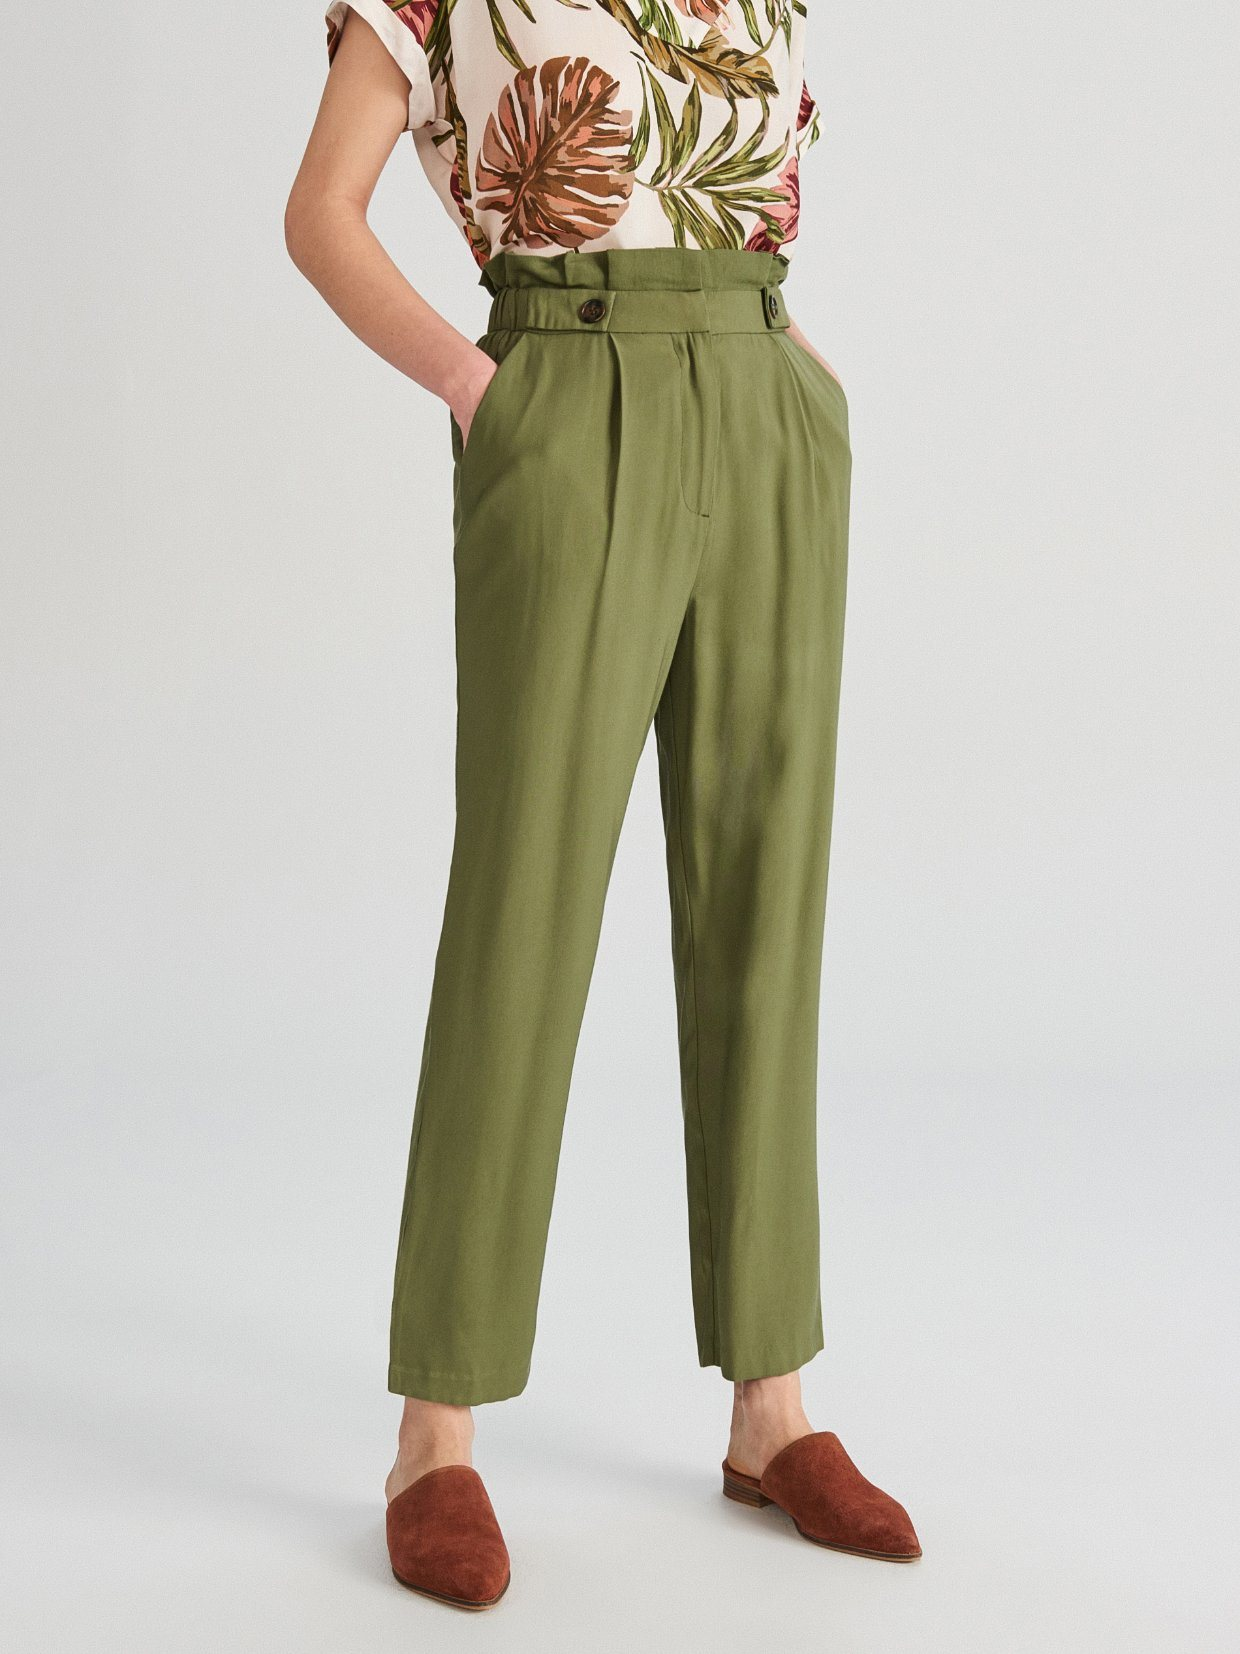 China Summer Wear Fashion Office Work Skinny Pencil Designs Cotton Women  Pants Trousers for Women - China Pant and Tourser price